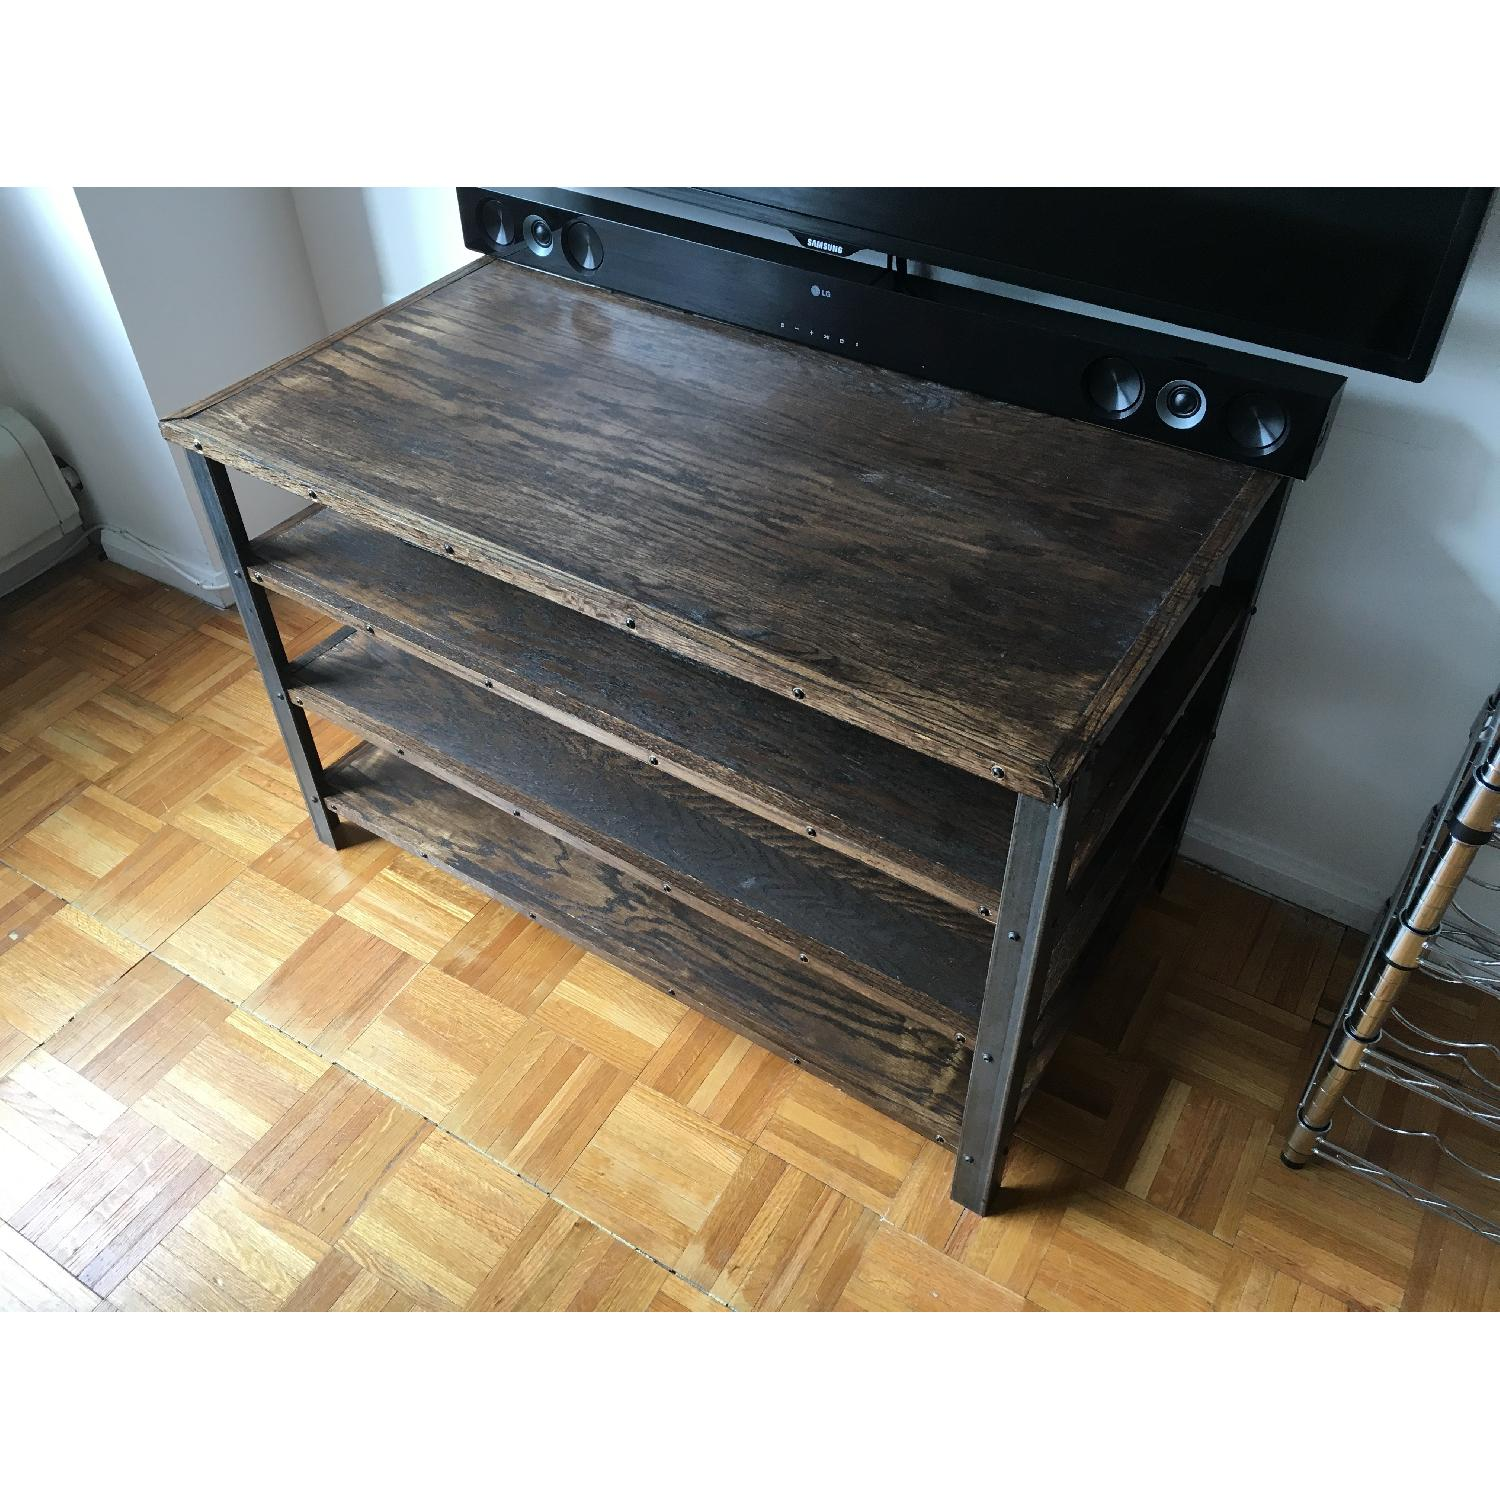 Antique Industrial Style Media Storage Shelves - image-1